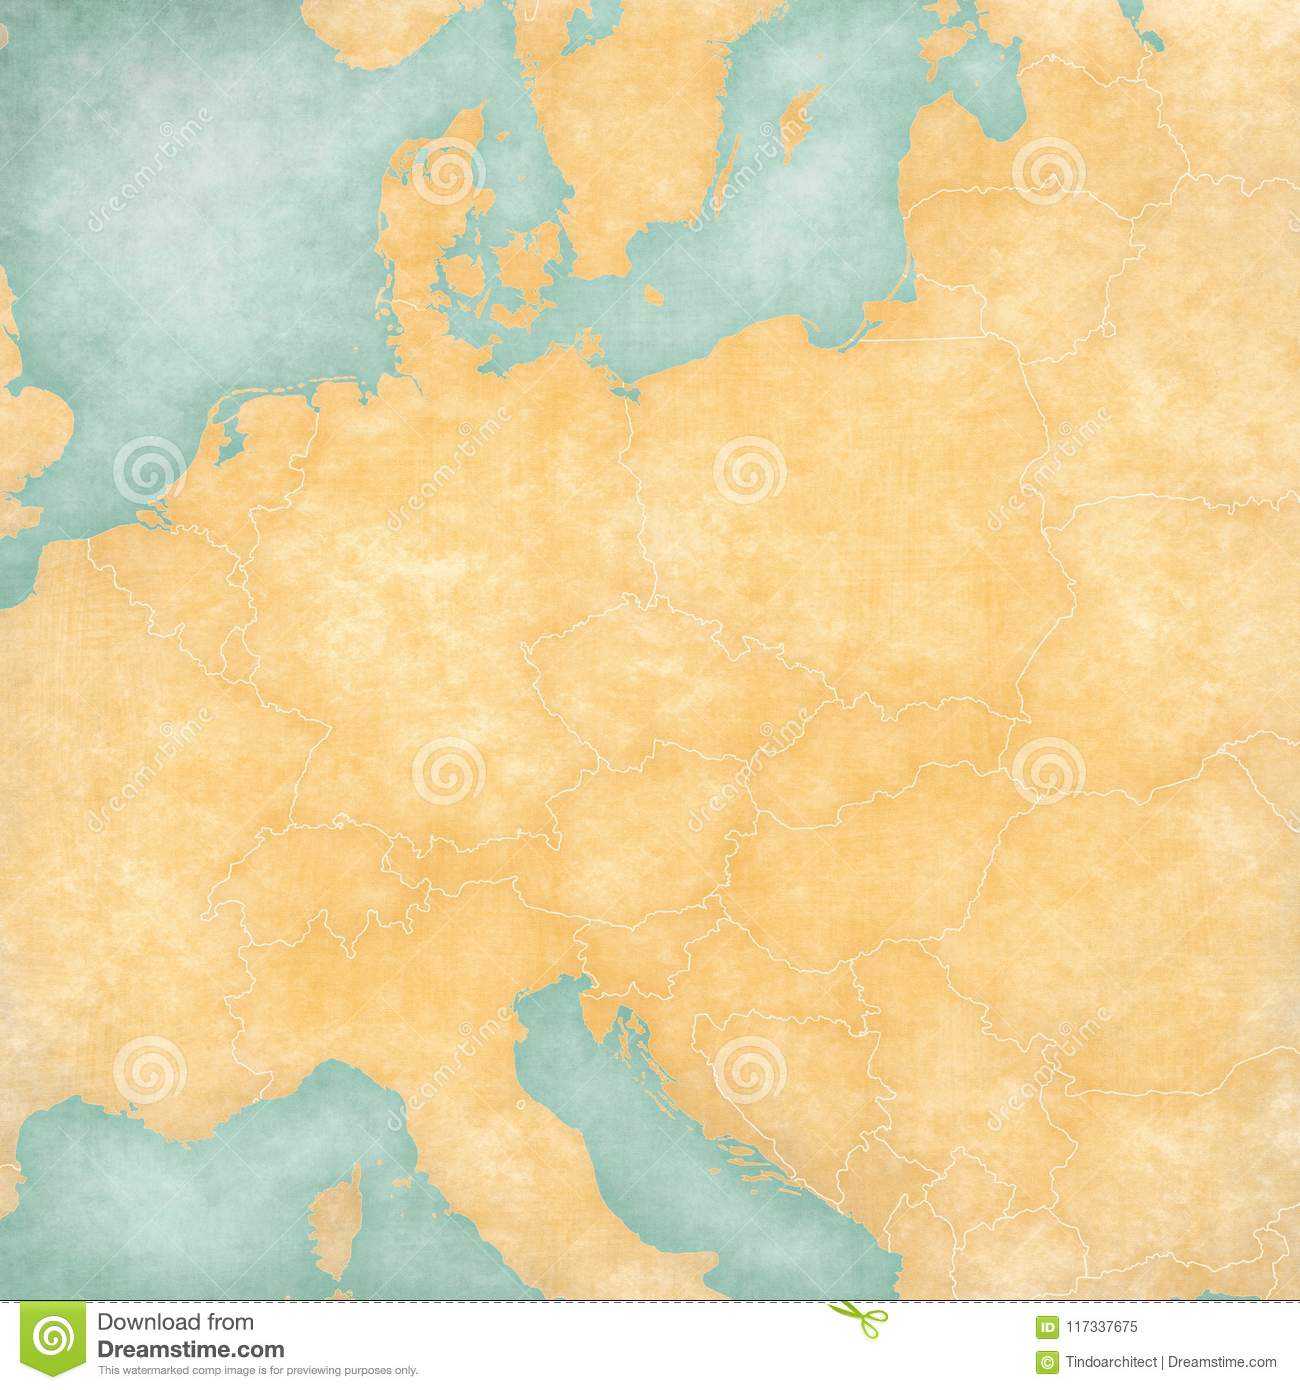 Blank Map Of Central Europe Stock Illustration Illustration Of